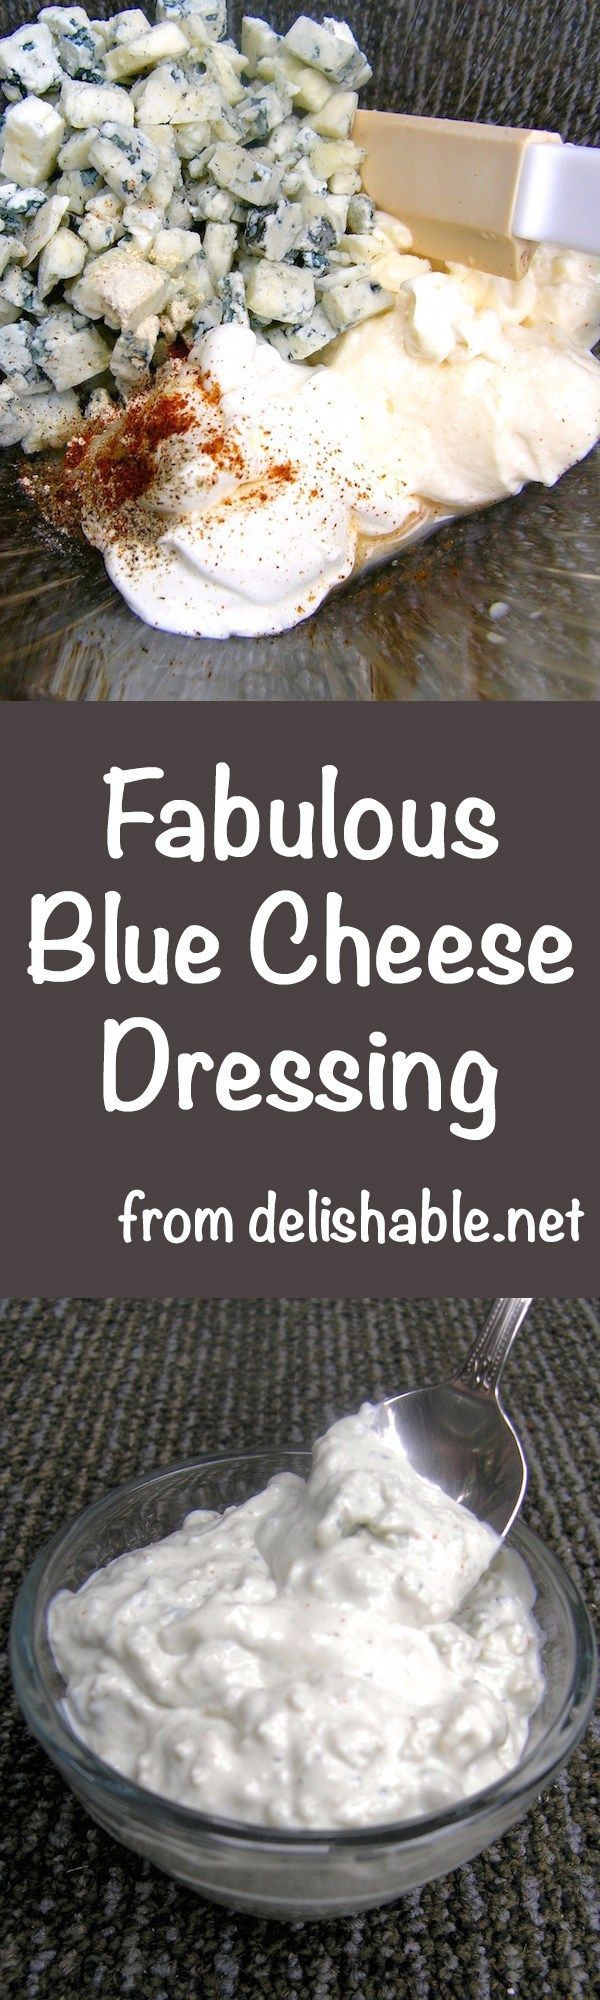 Fabulous Blue Cheese Dressing - exactly the way I like it, with lot's of tangy flavor, chunks of blue cheese, and only 98 calories. You'll love it! | delishable.net